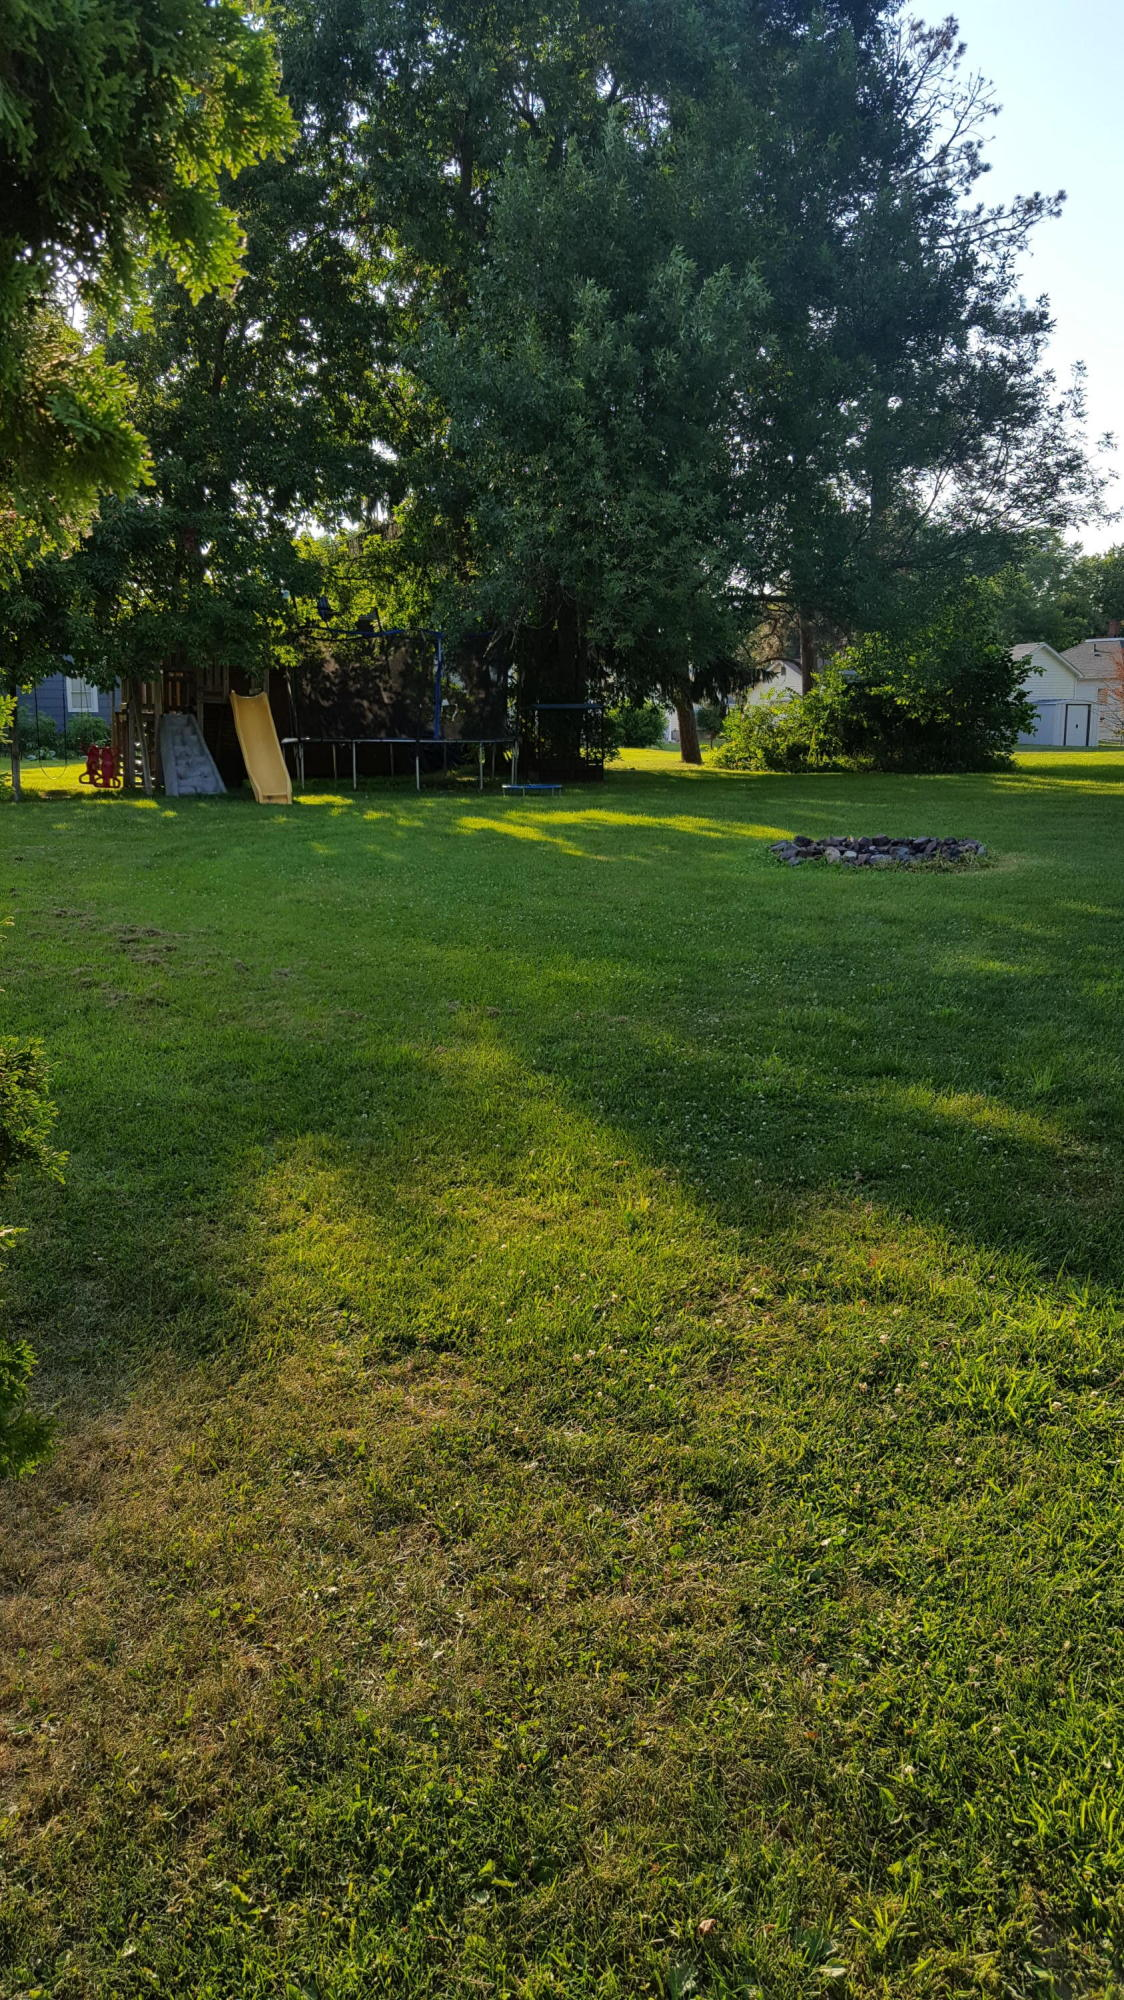 1731 Superior Ave<br /> Tomah,Monroe,54660,4 Bedrooms Bedrooms,2 BathroomsBathrooms,Two-family,Superior Ave,1595147